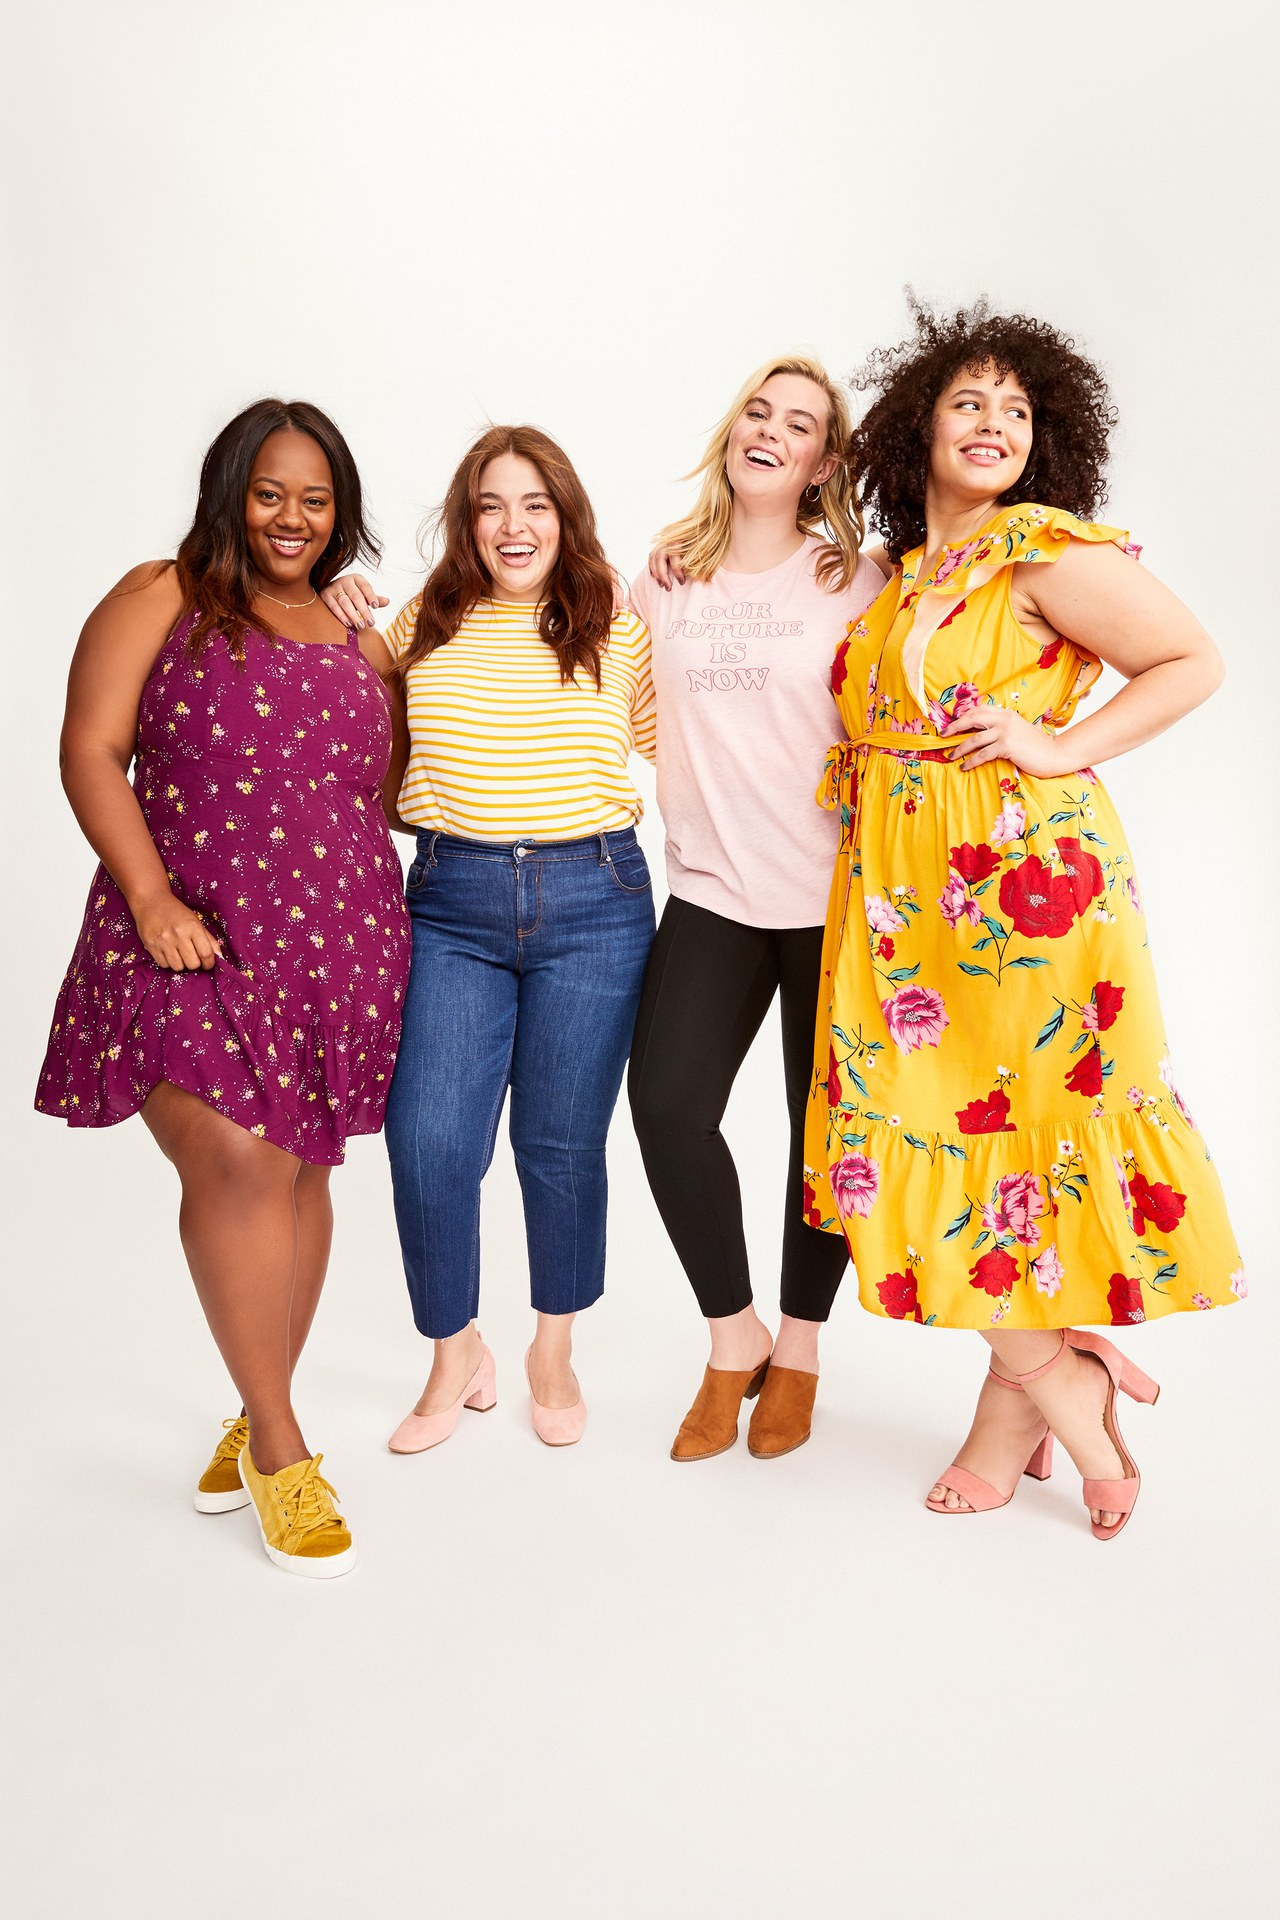 65dcec058c4 As for Old Navy s goal with the re-launch of plus sizes in store